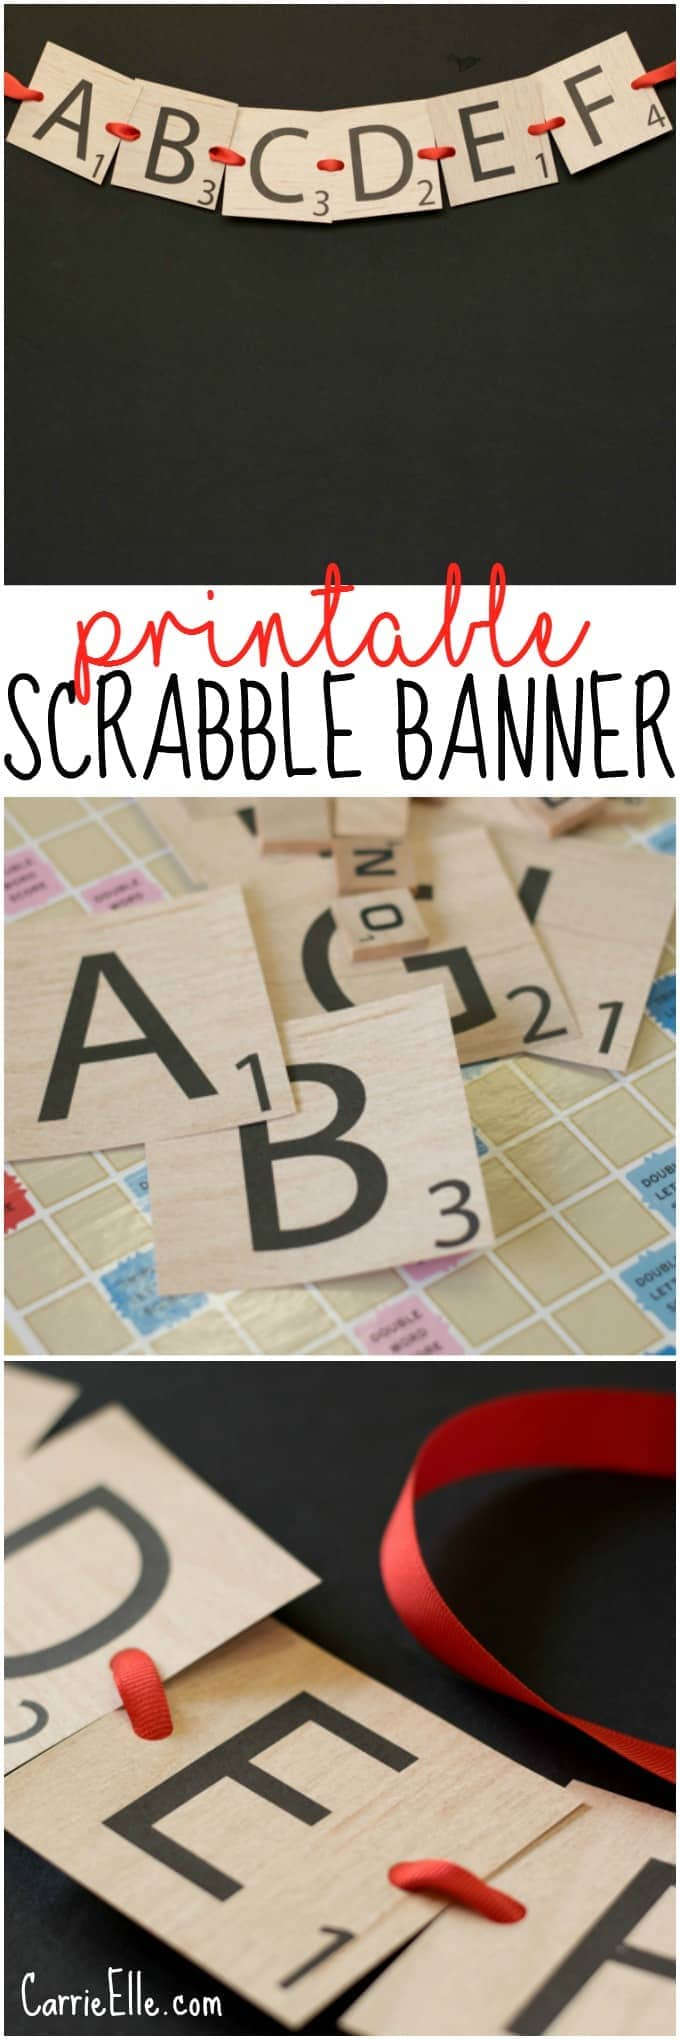 photo about Scrabble Letters Printable named Scrabble Letter Printable Banner - Carrie Elle